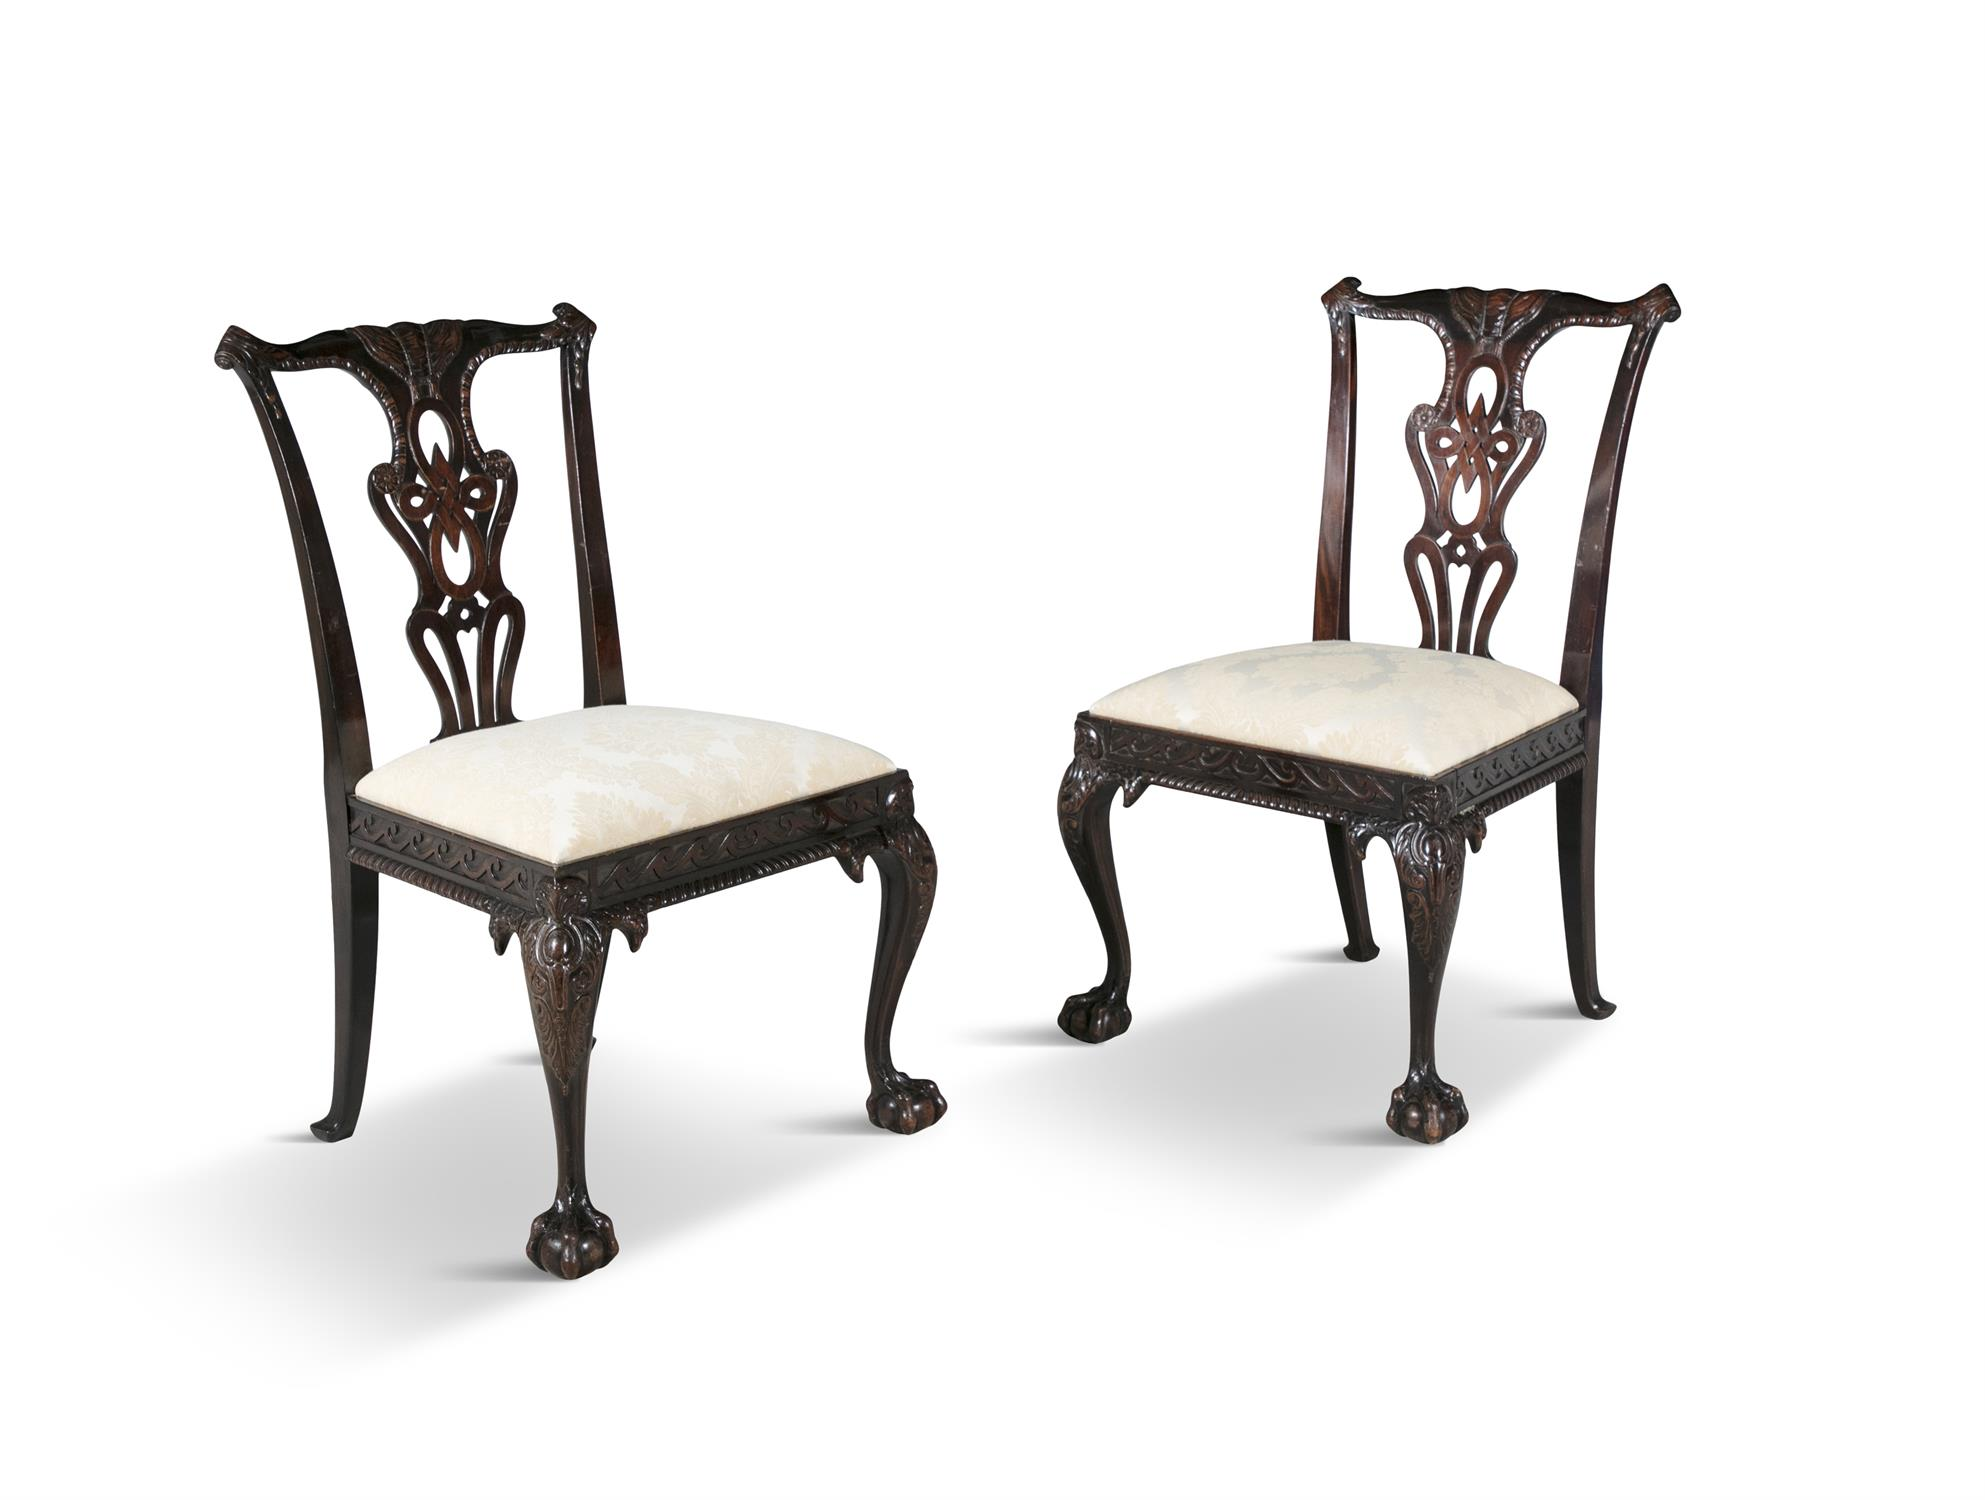 A PAIR OF GEORGIAN REVIVAL MAHOGANY DINING CHAIRS, 19th century, each with pierced vase shaped - Image 2 of 3